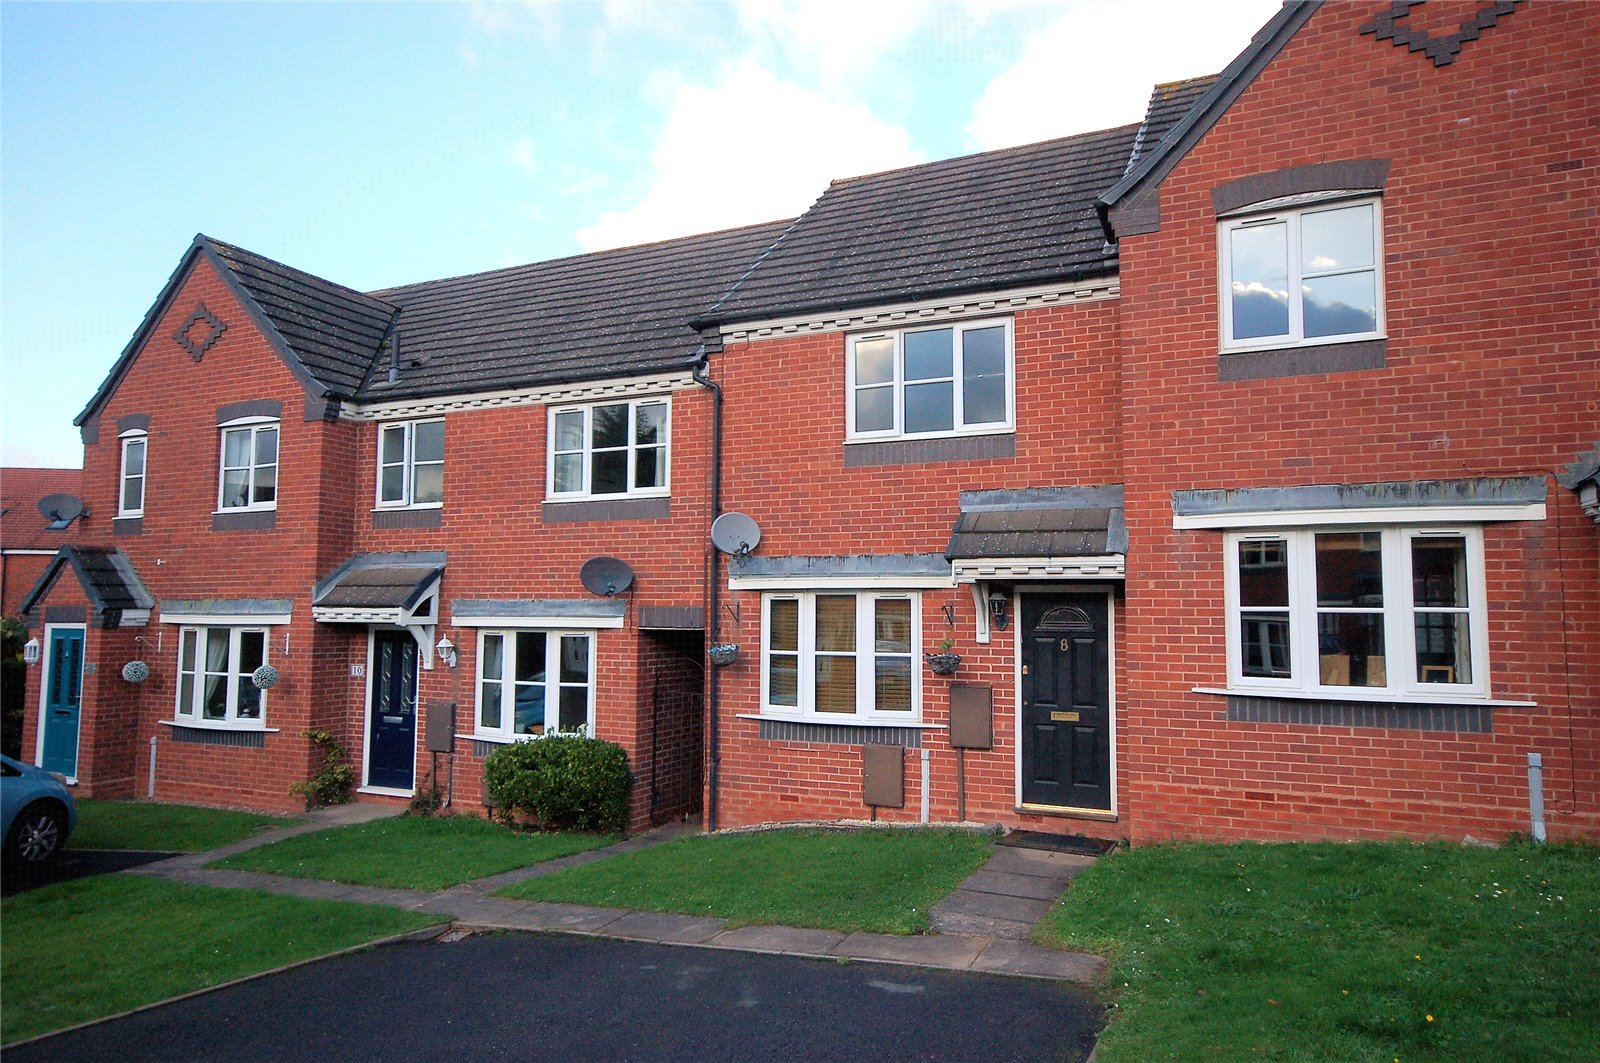 2 Bedrooms Terraced House for sale in 8 Tining Close, Bridgnorth, Shropshire, WV16